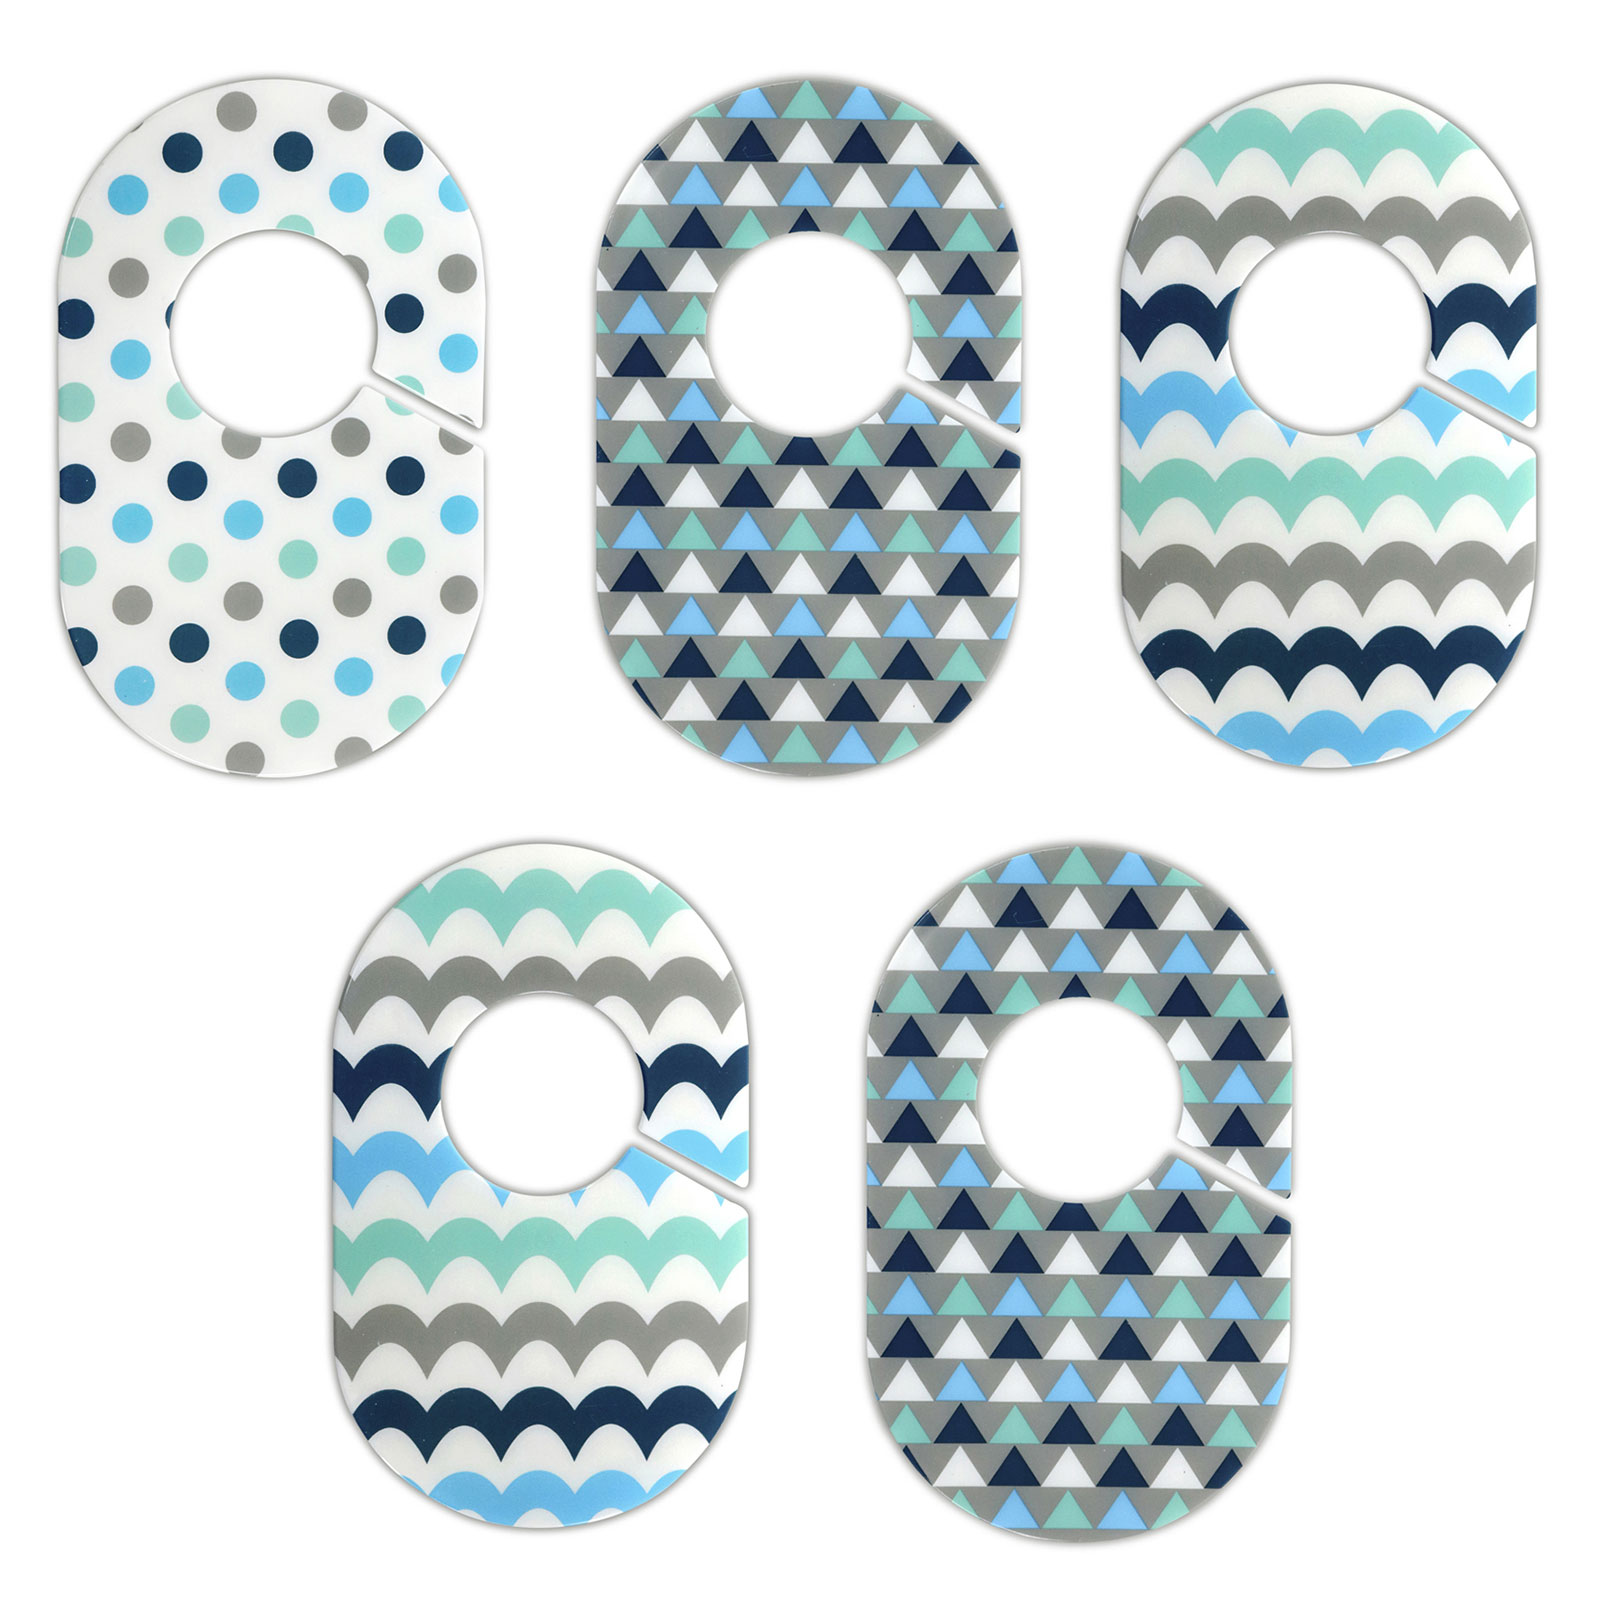 Little Haven Nursery Closet Organizers Dividers - Blue and Green Geometric Designs - Set of 5 Plastic Baby Closet Rod Dividers